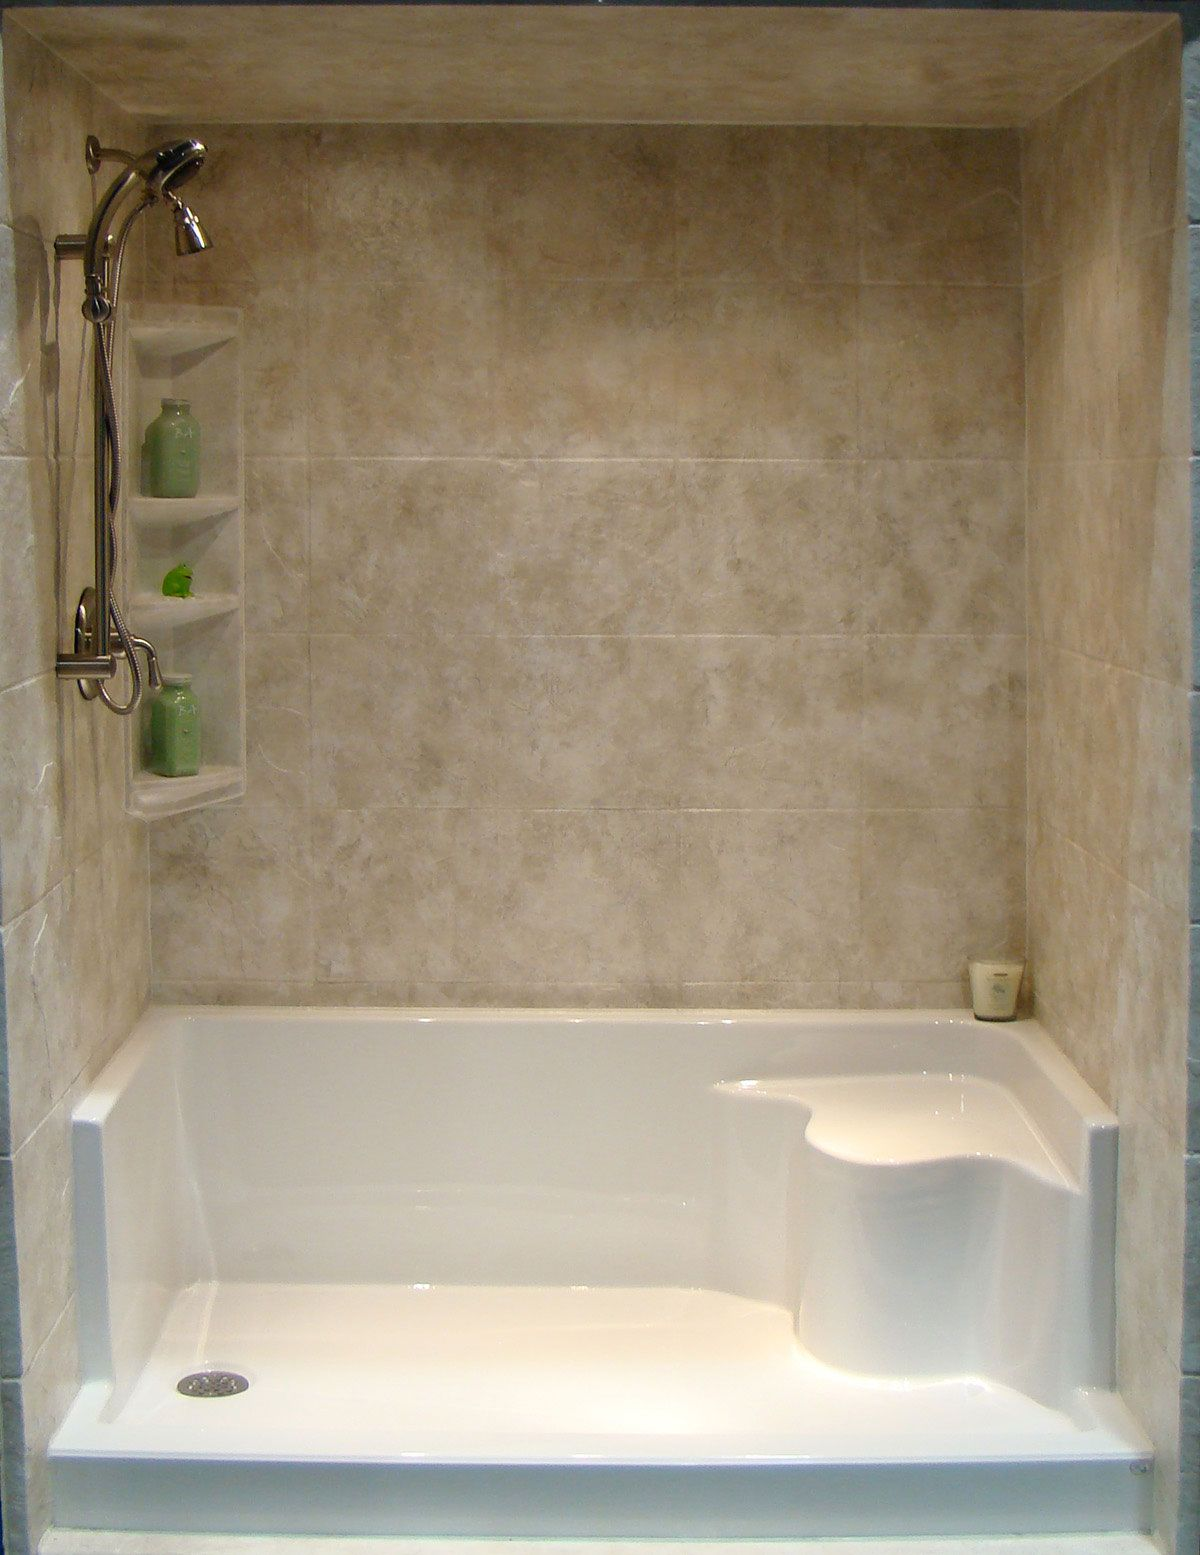 tub an shower conversion ideas | Bathtub Refinishing - Tub to ...